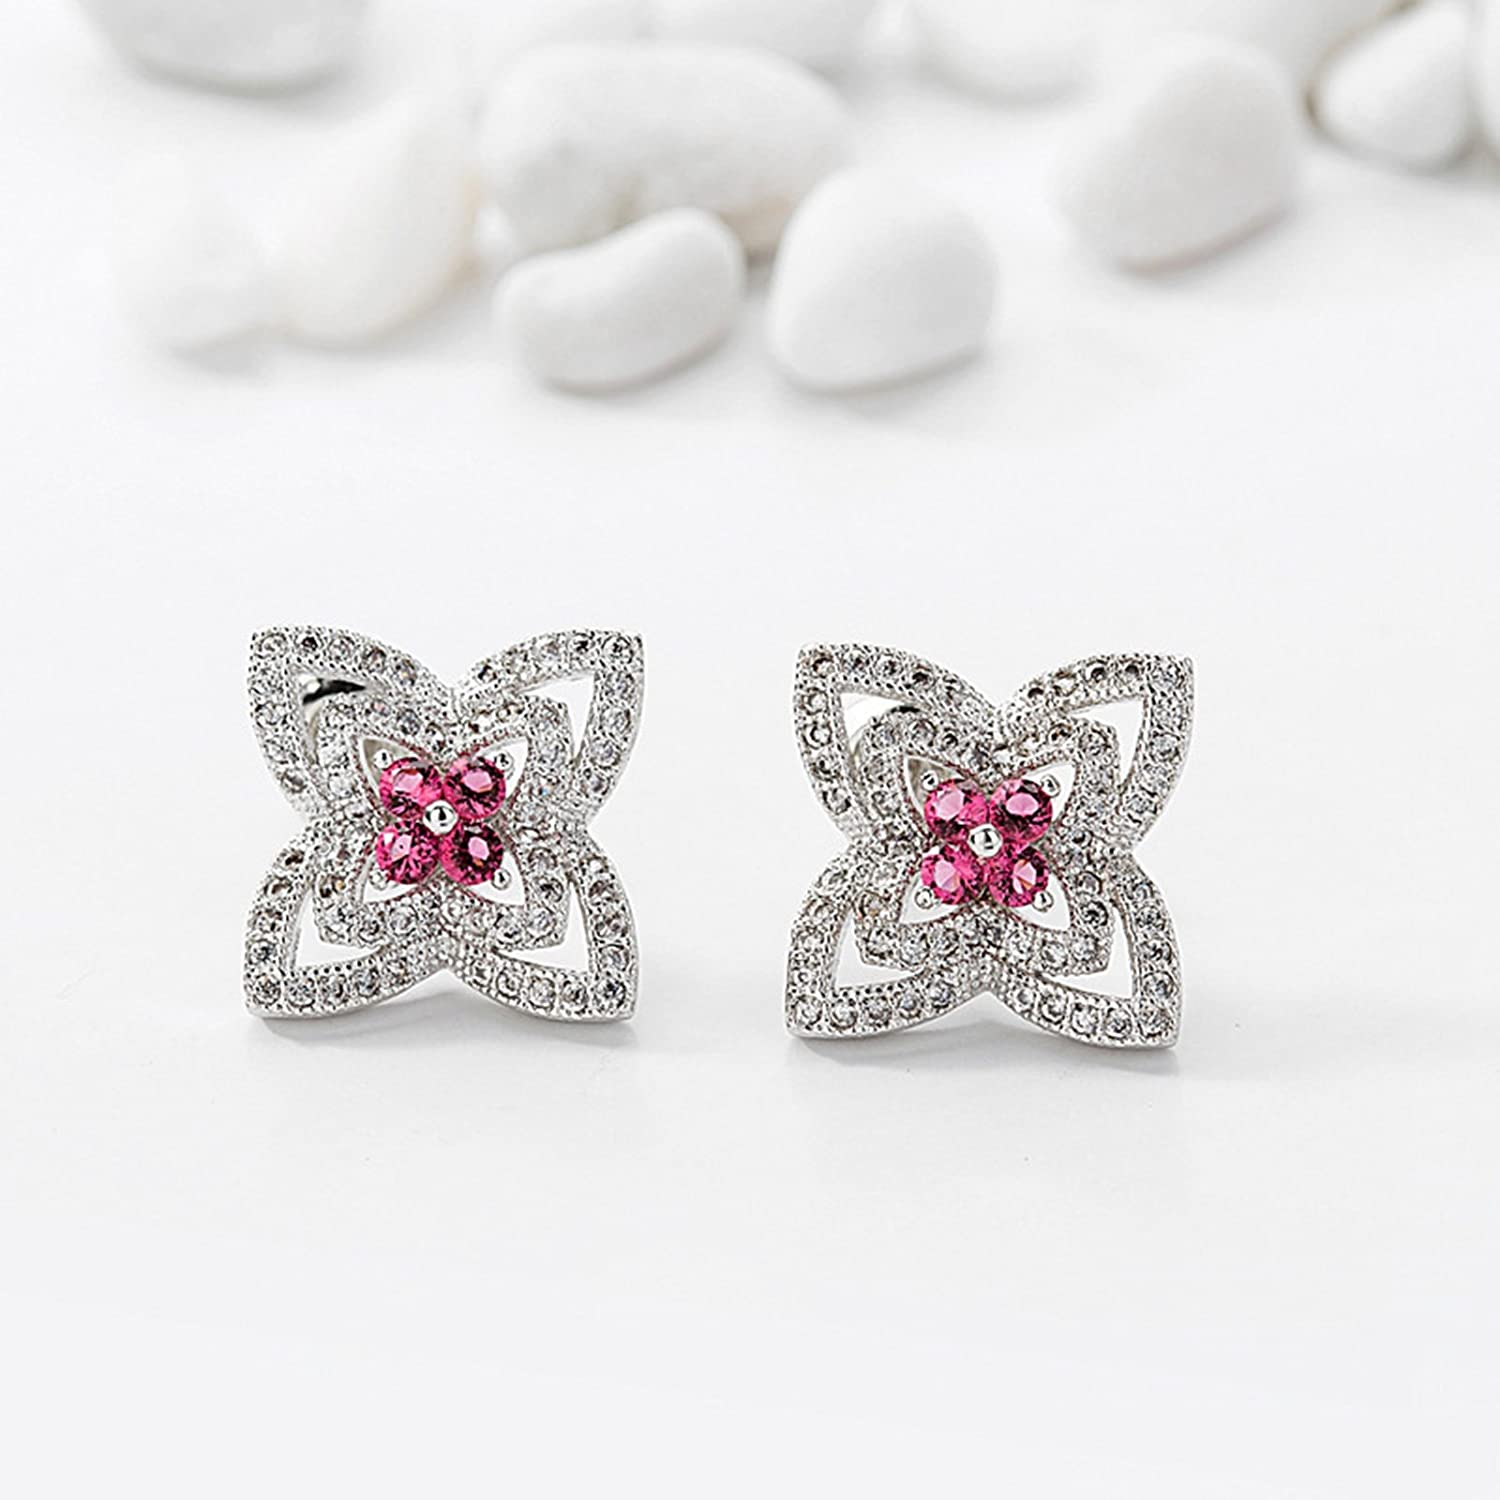 Beydodo Cubic Zirconia Earrings Studs Gold Plated Earrings for Babies Flower Round Red Cubic Zirconia